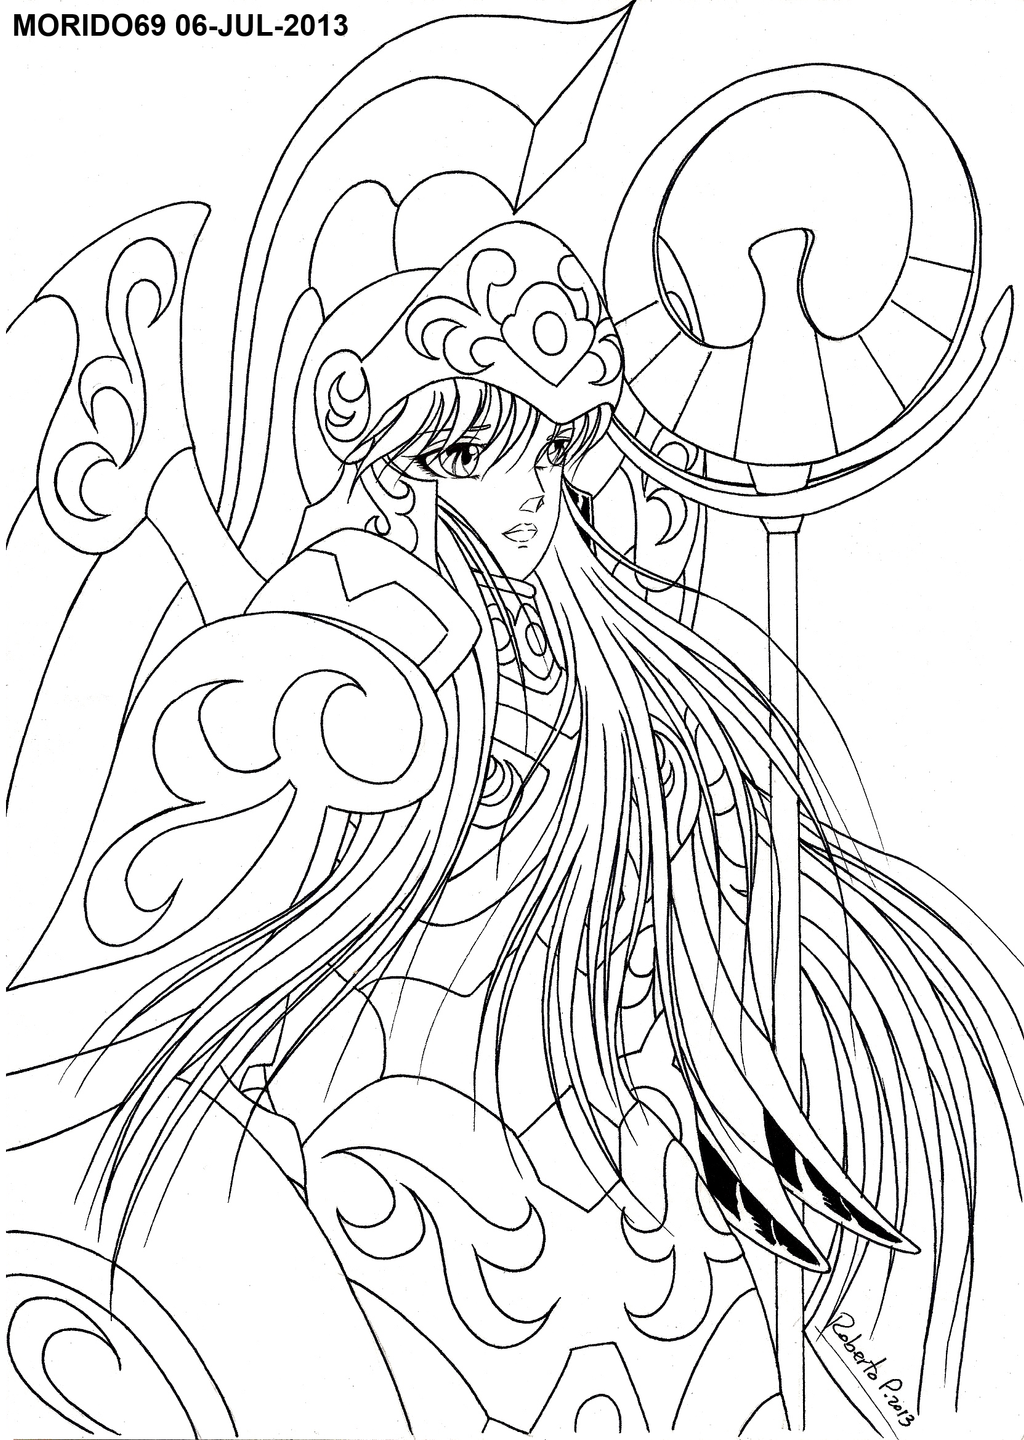 Modern Saint Seiya Coloring Pages Sketch - Printable Coloring Pages ...